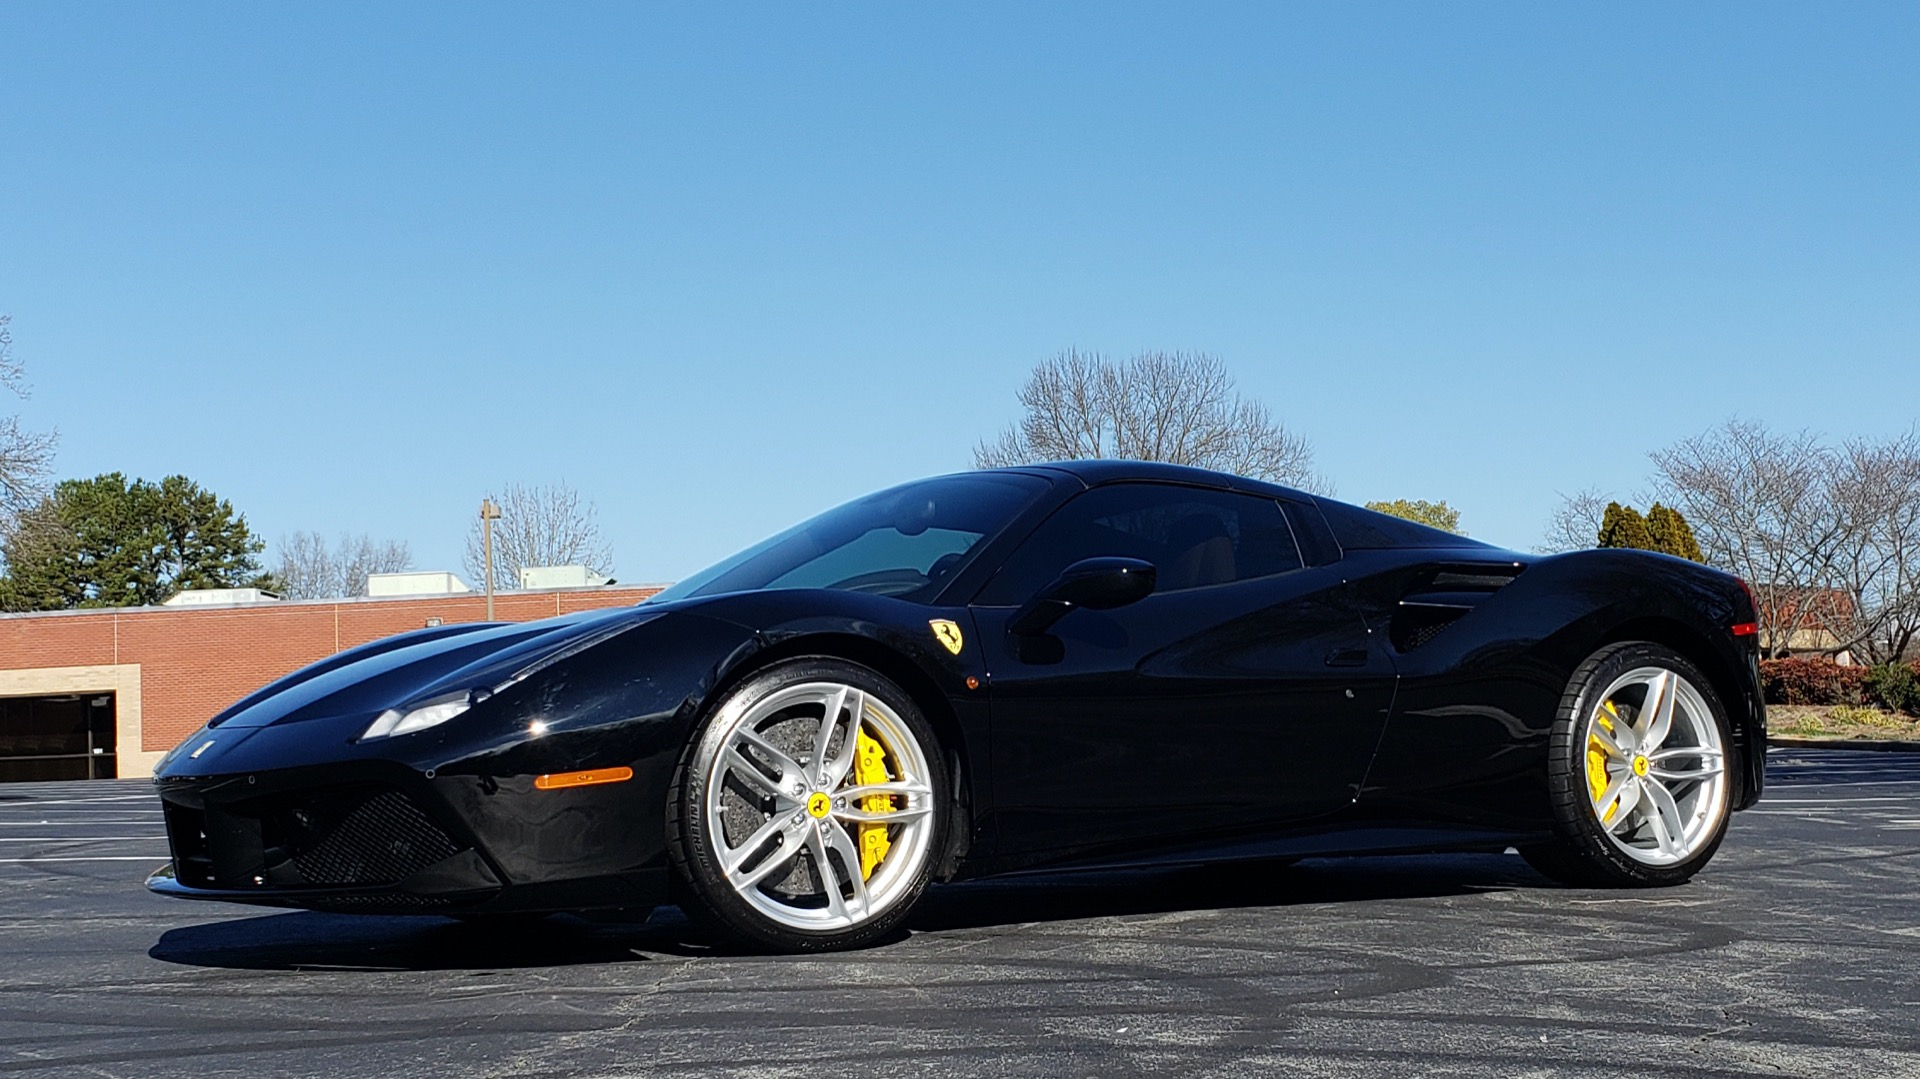 Used 2017 Ferrari 488 Spider SUSP LFT / JBL SND / SPRT EXH / F1 TRANS for sale $315,000 at Formula Imports in Charlotte NC 28227 1